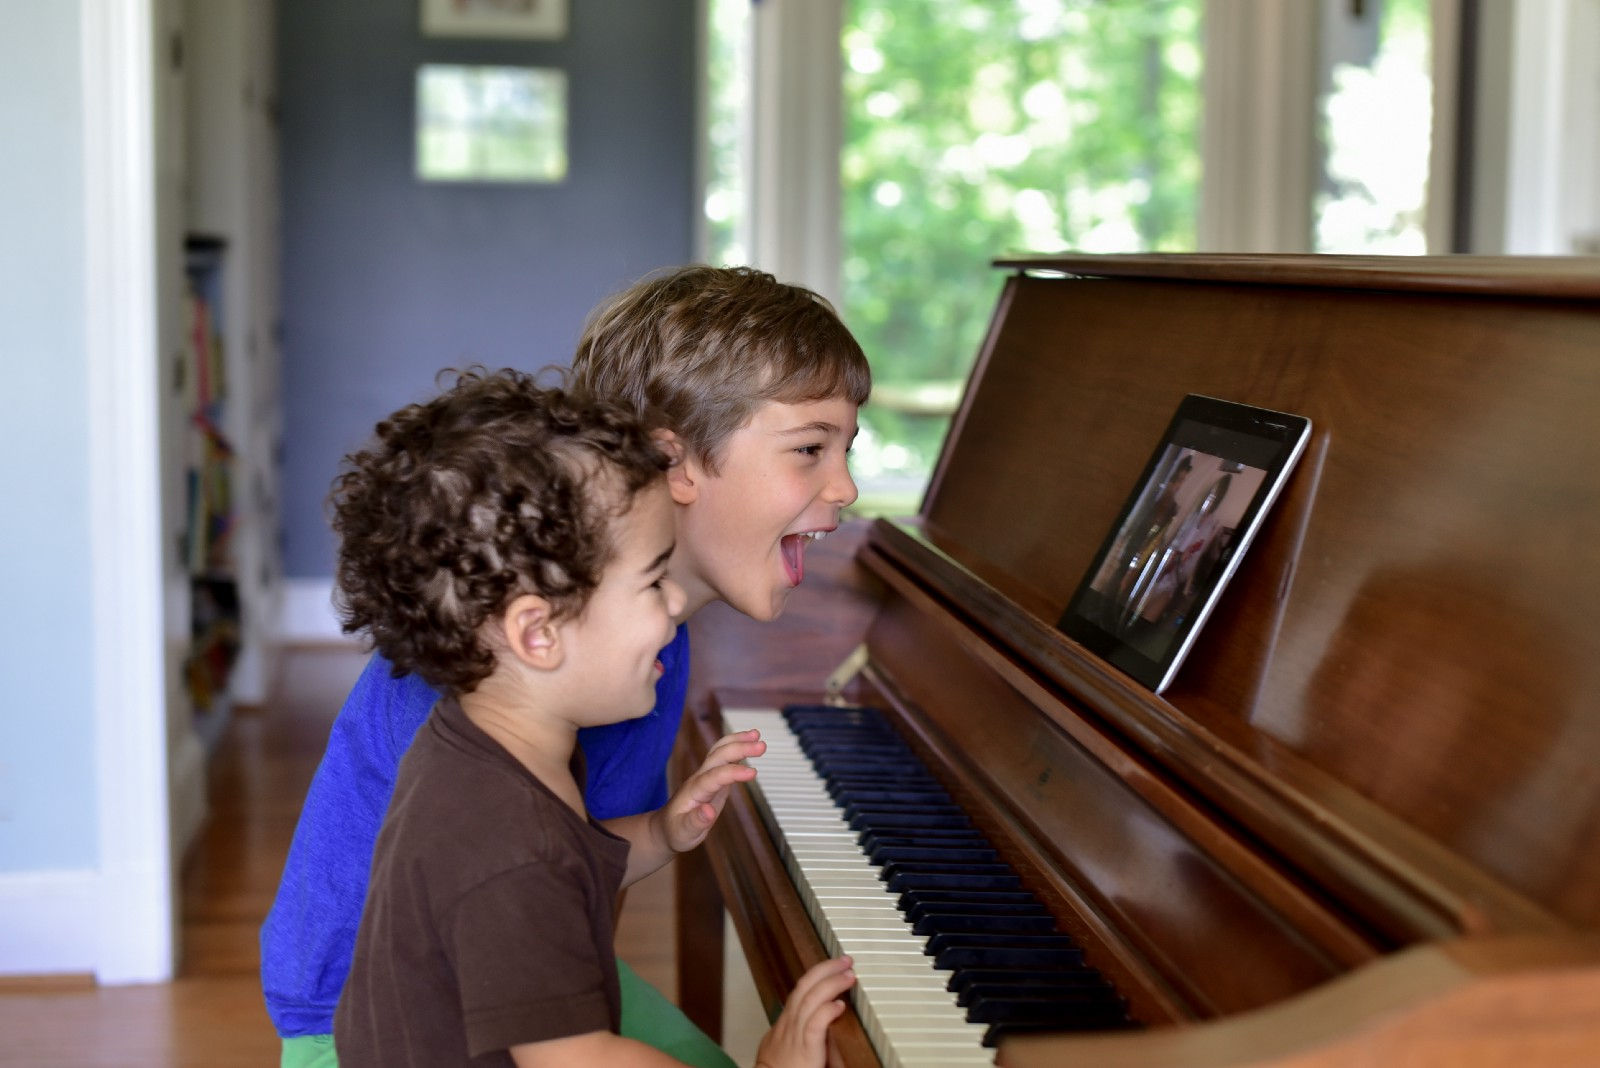 The musical development of the child: when and how to start